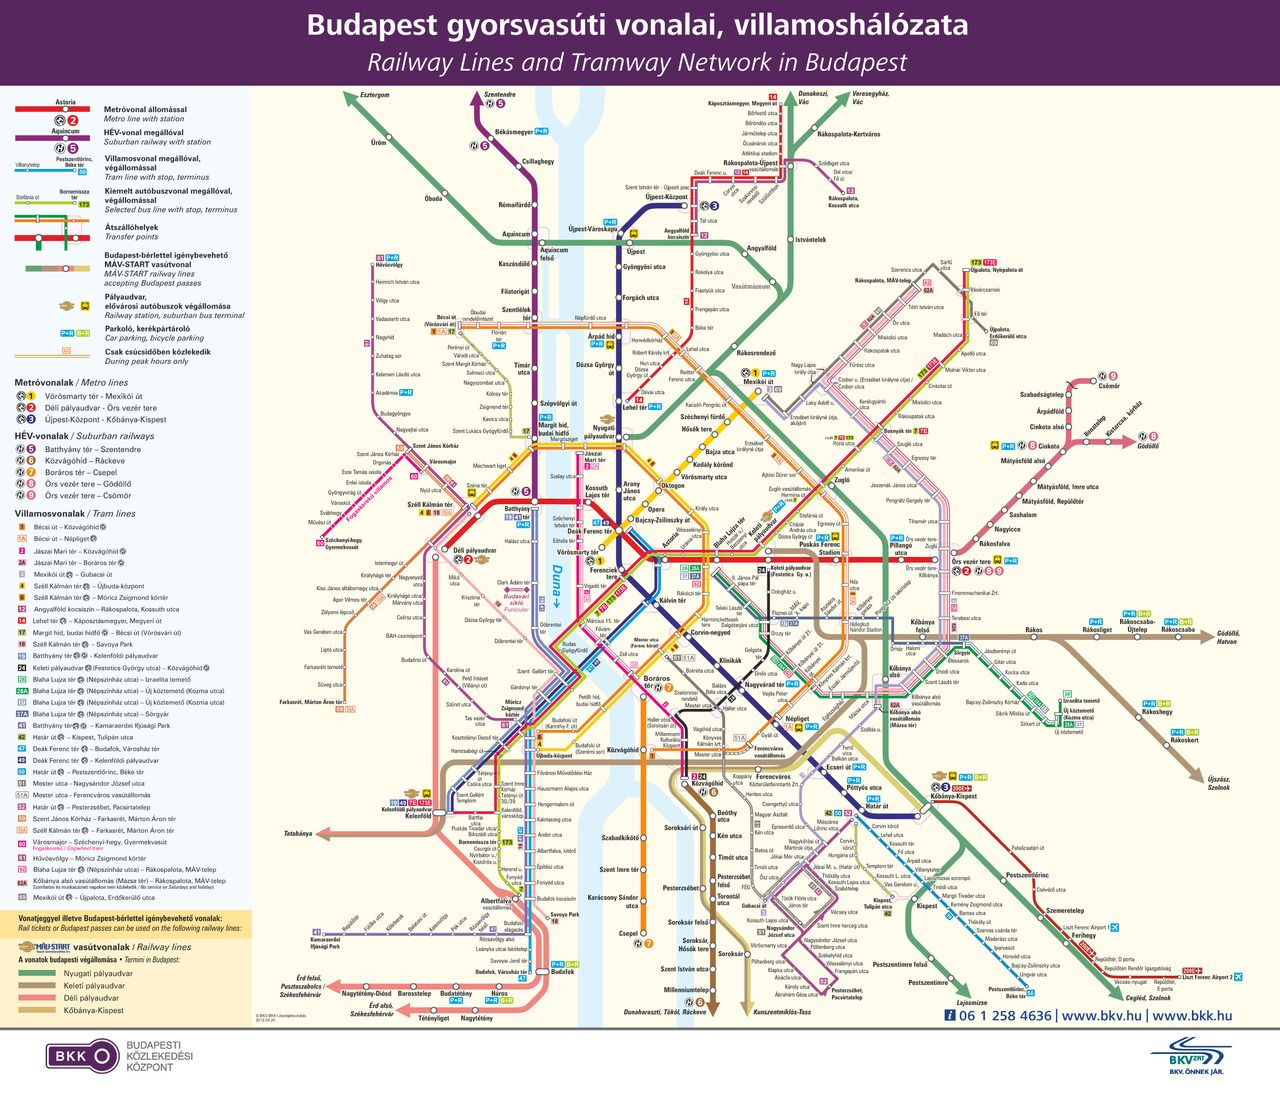 Submission Fantasy Map DC Commuter Rail By Nick The Power - Washington dc pyramid map